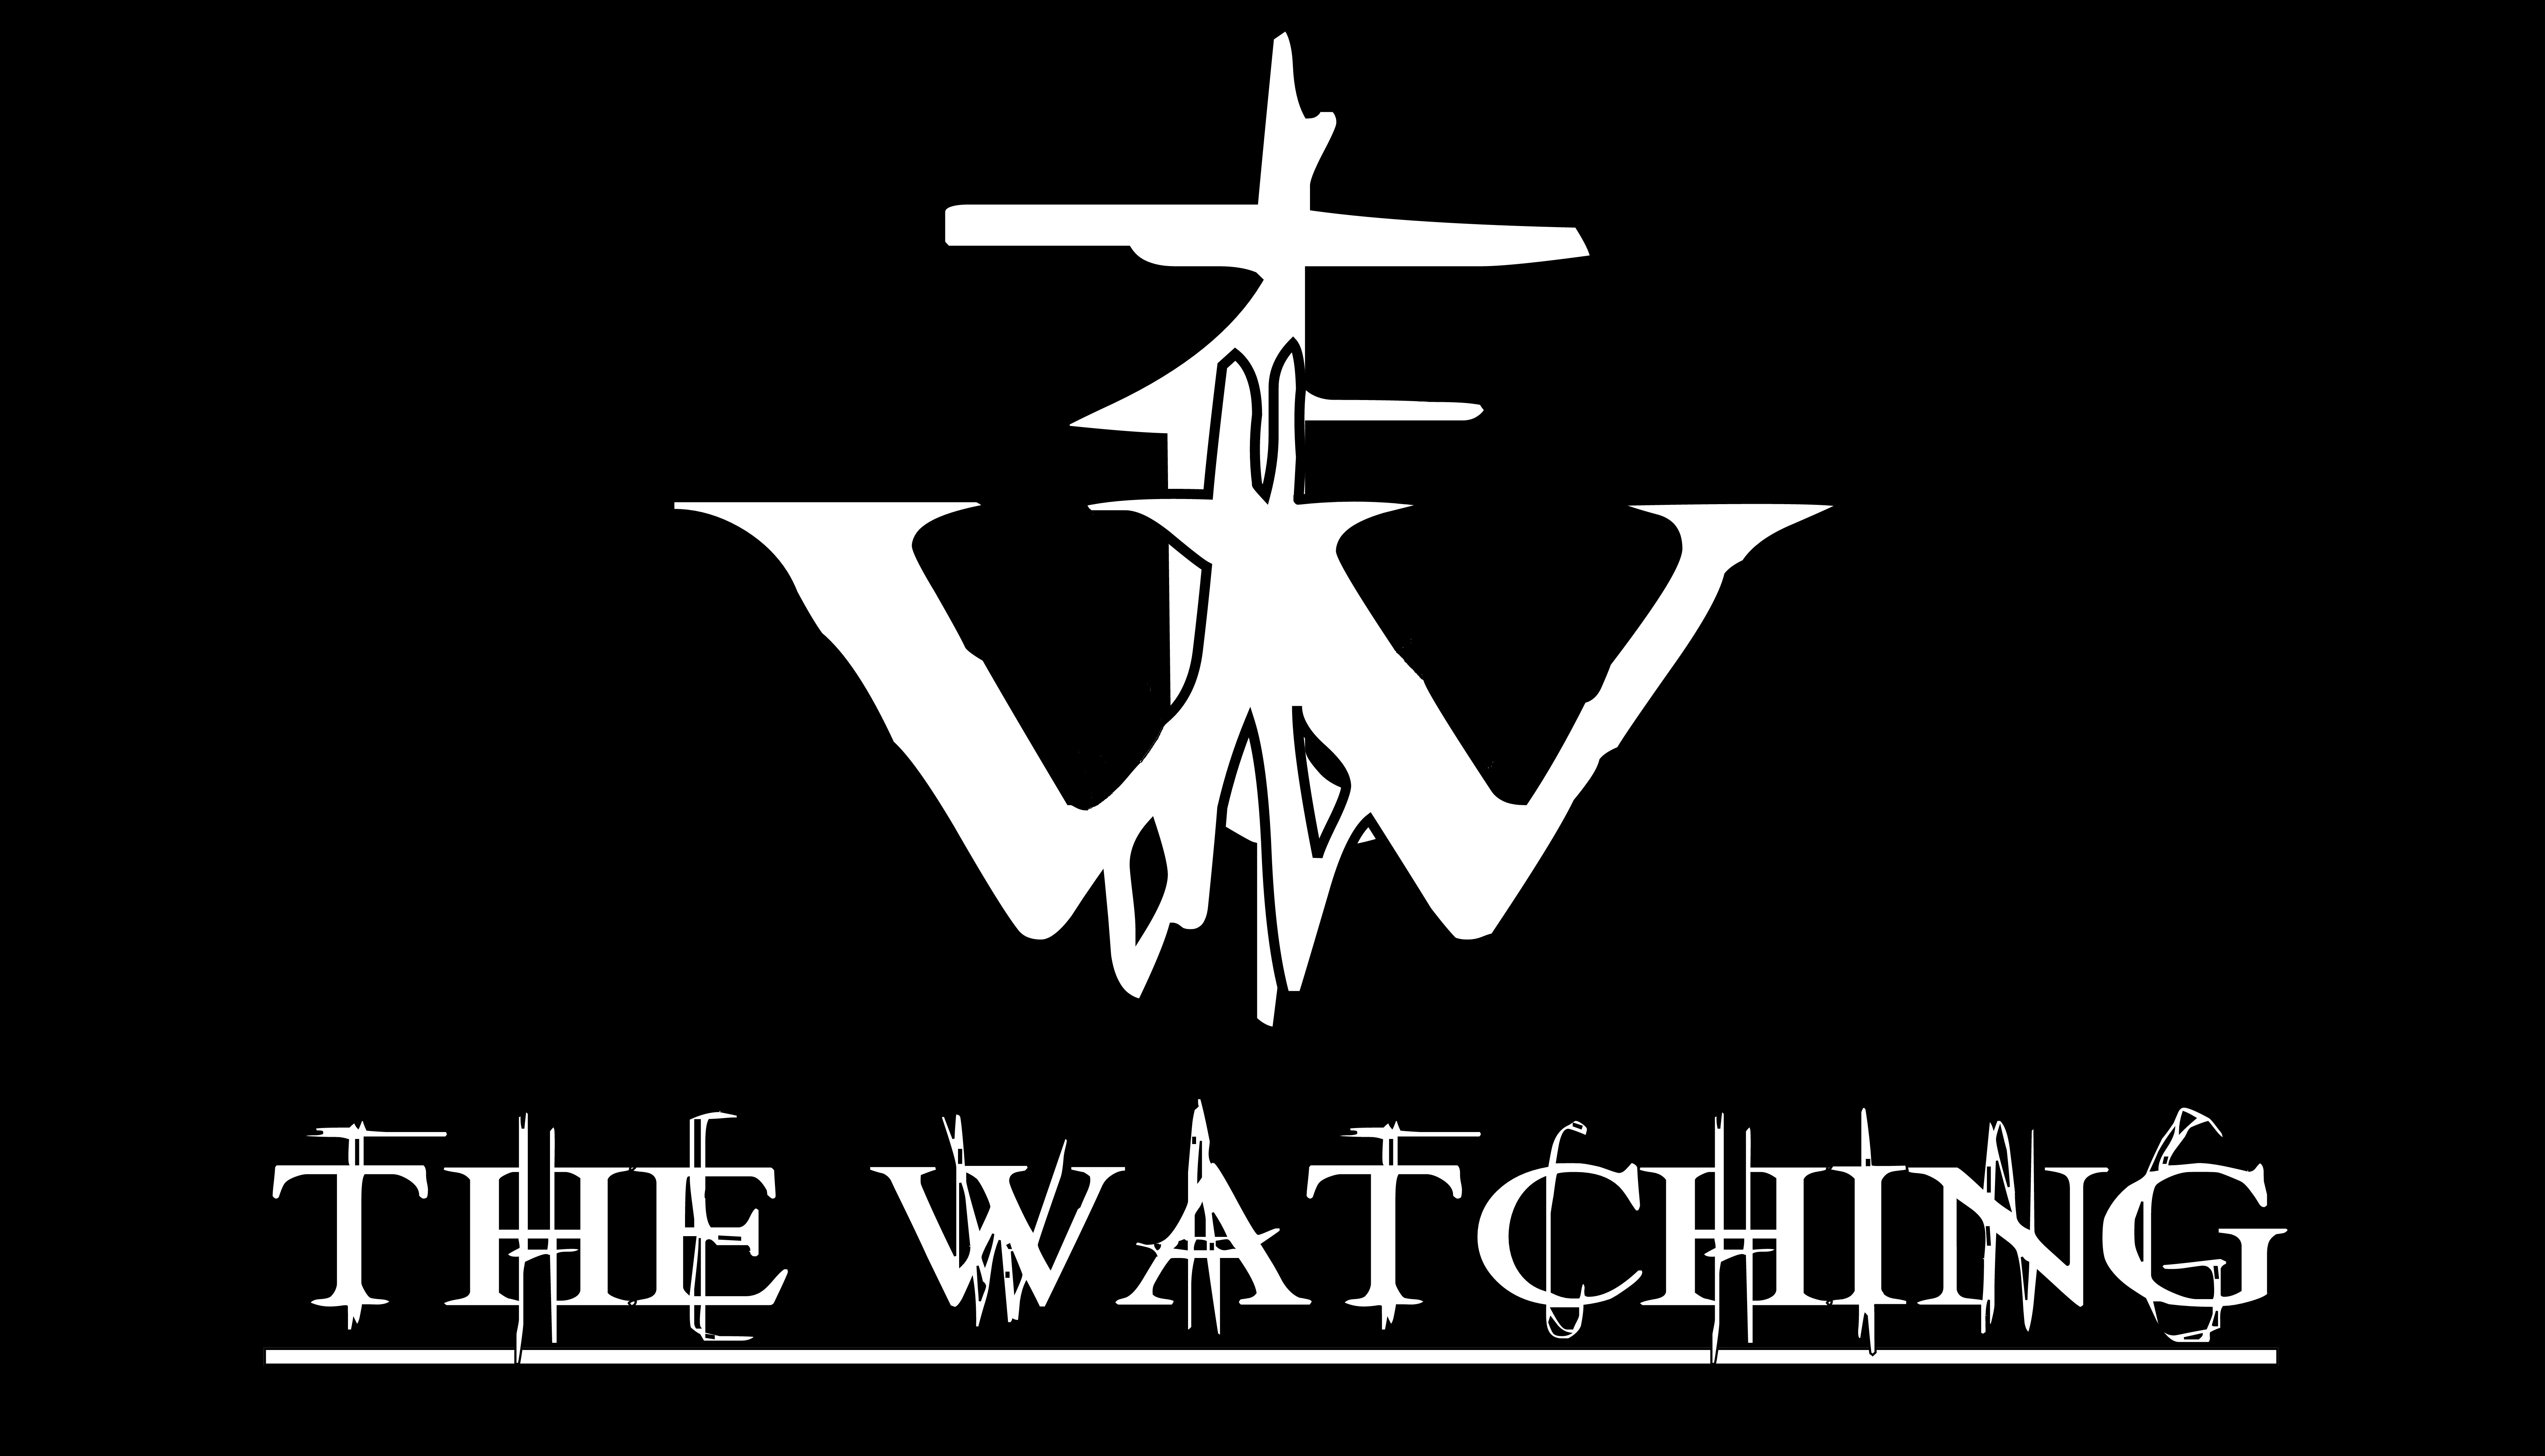 Logo: The Watching